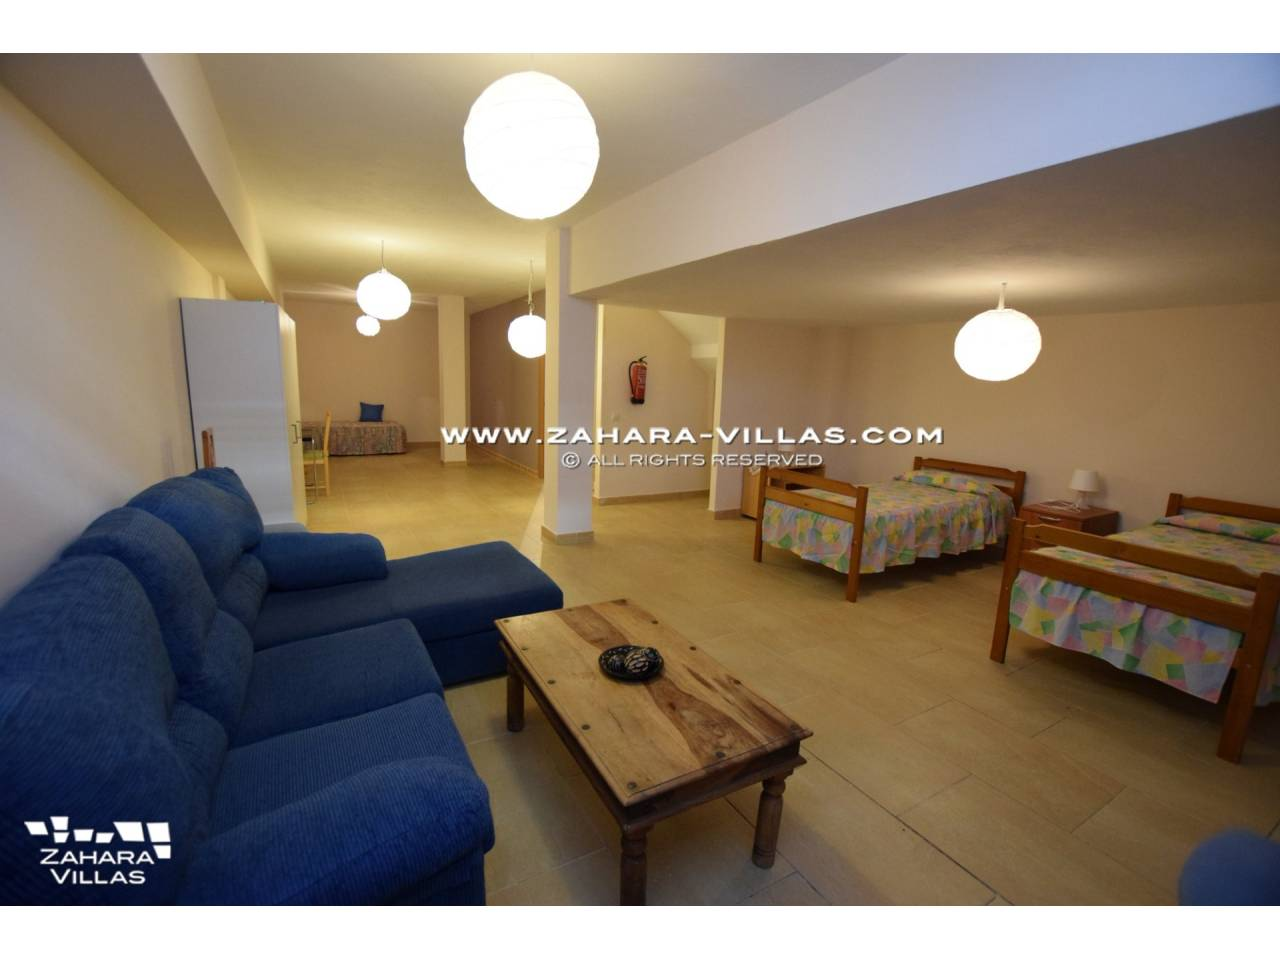 Imagen 24 de Semi-detached house for sale en Zahara de los Atunes